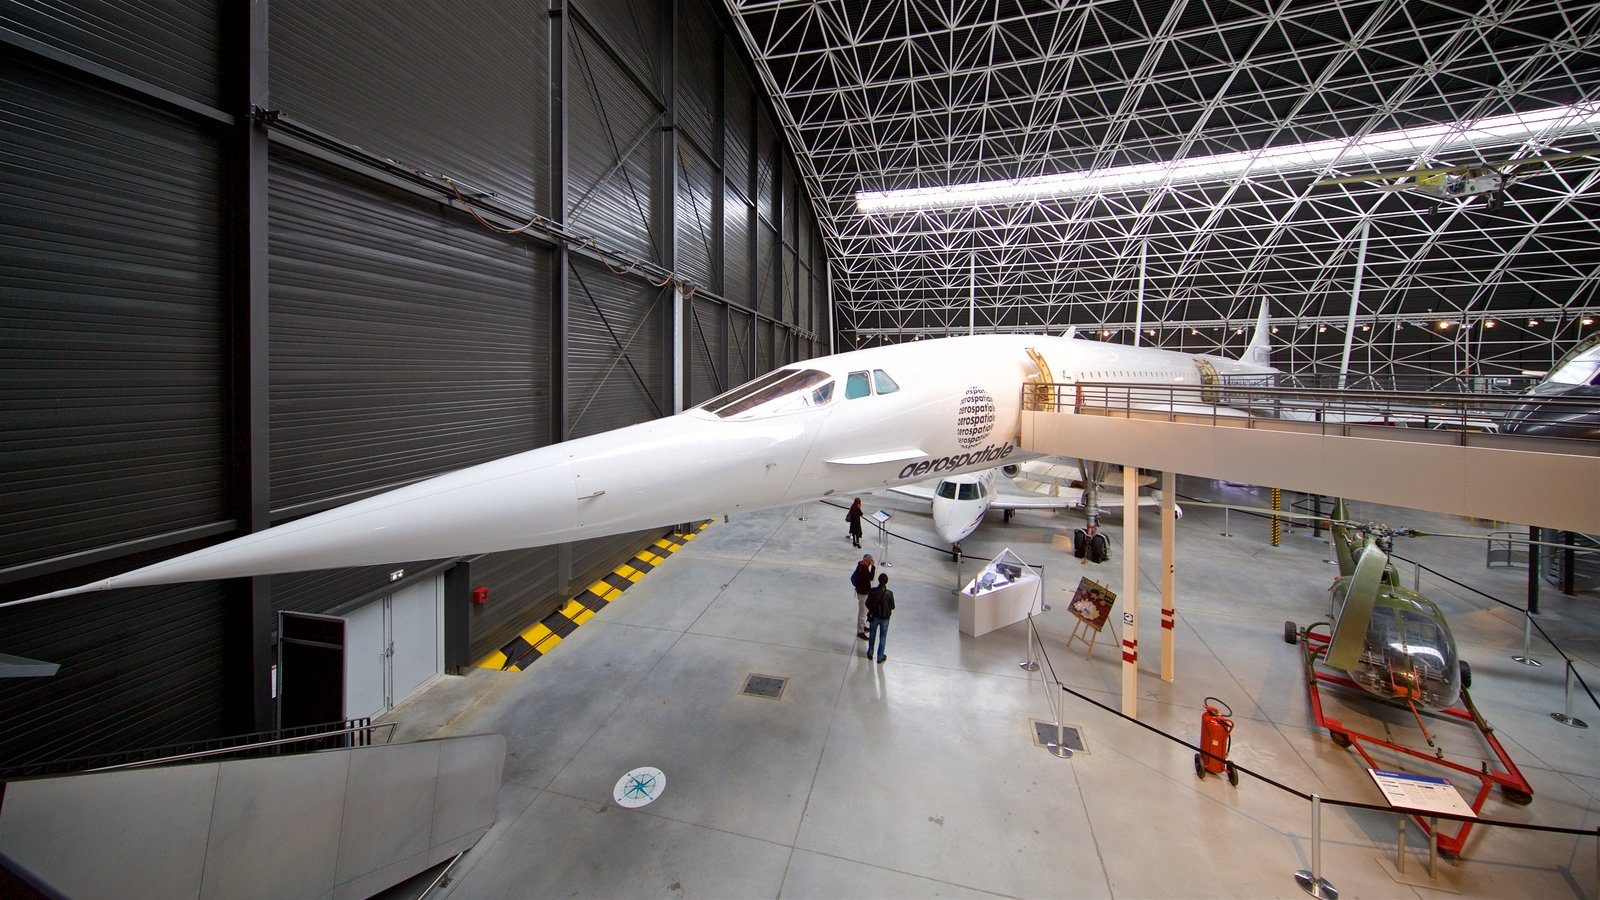 Airbus which includes interior views and aircraft